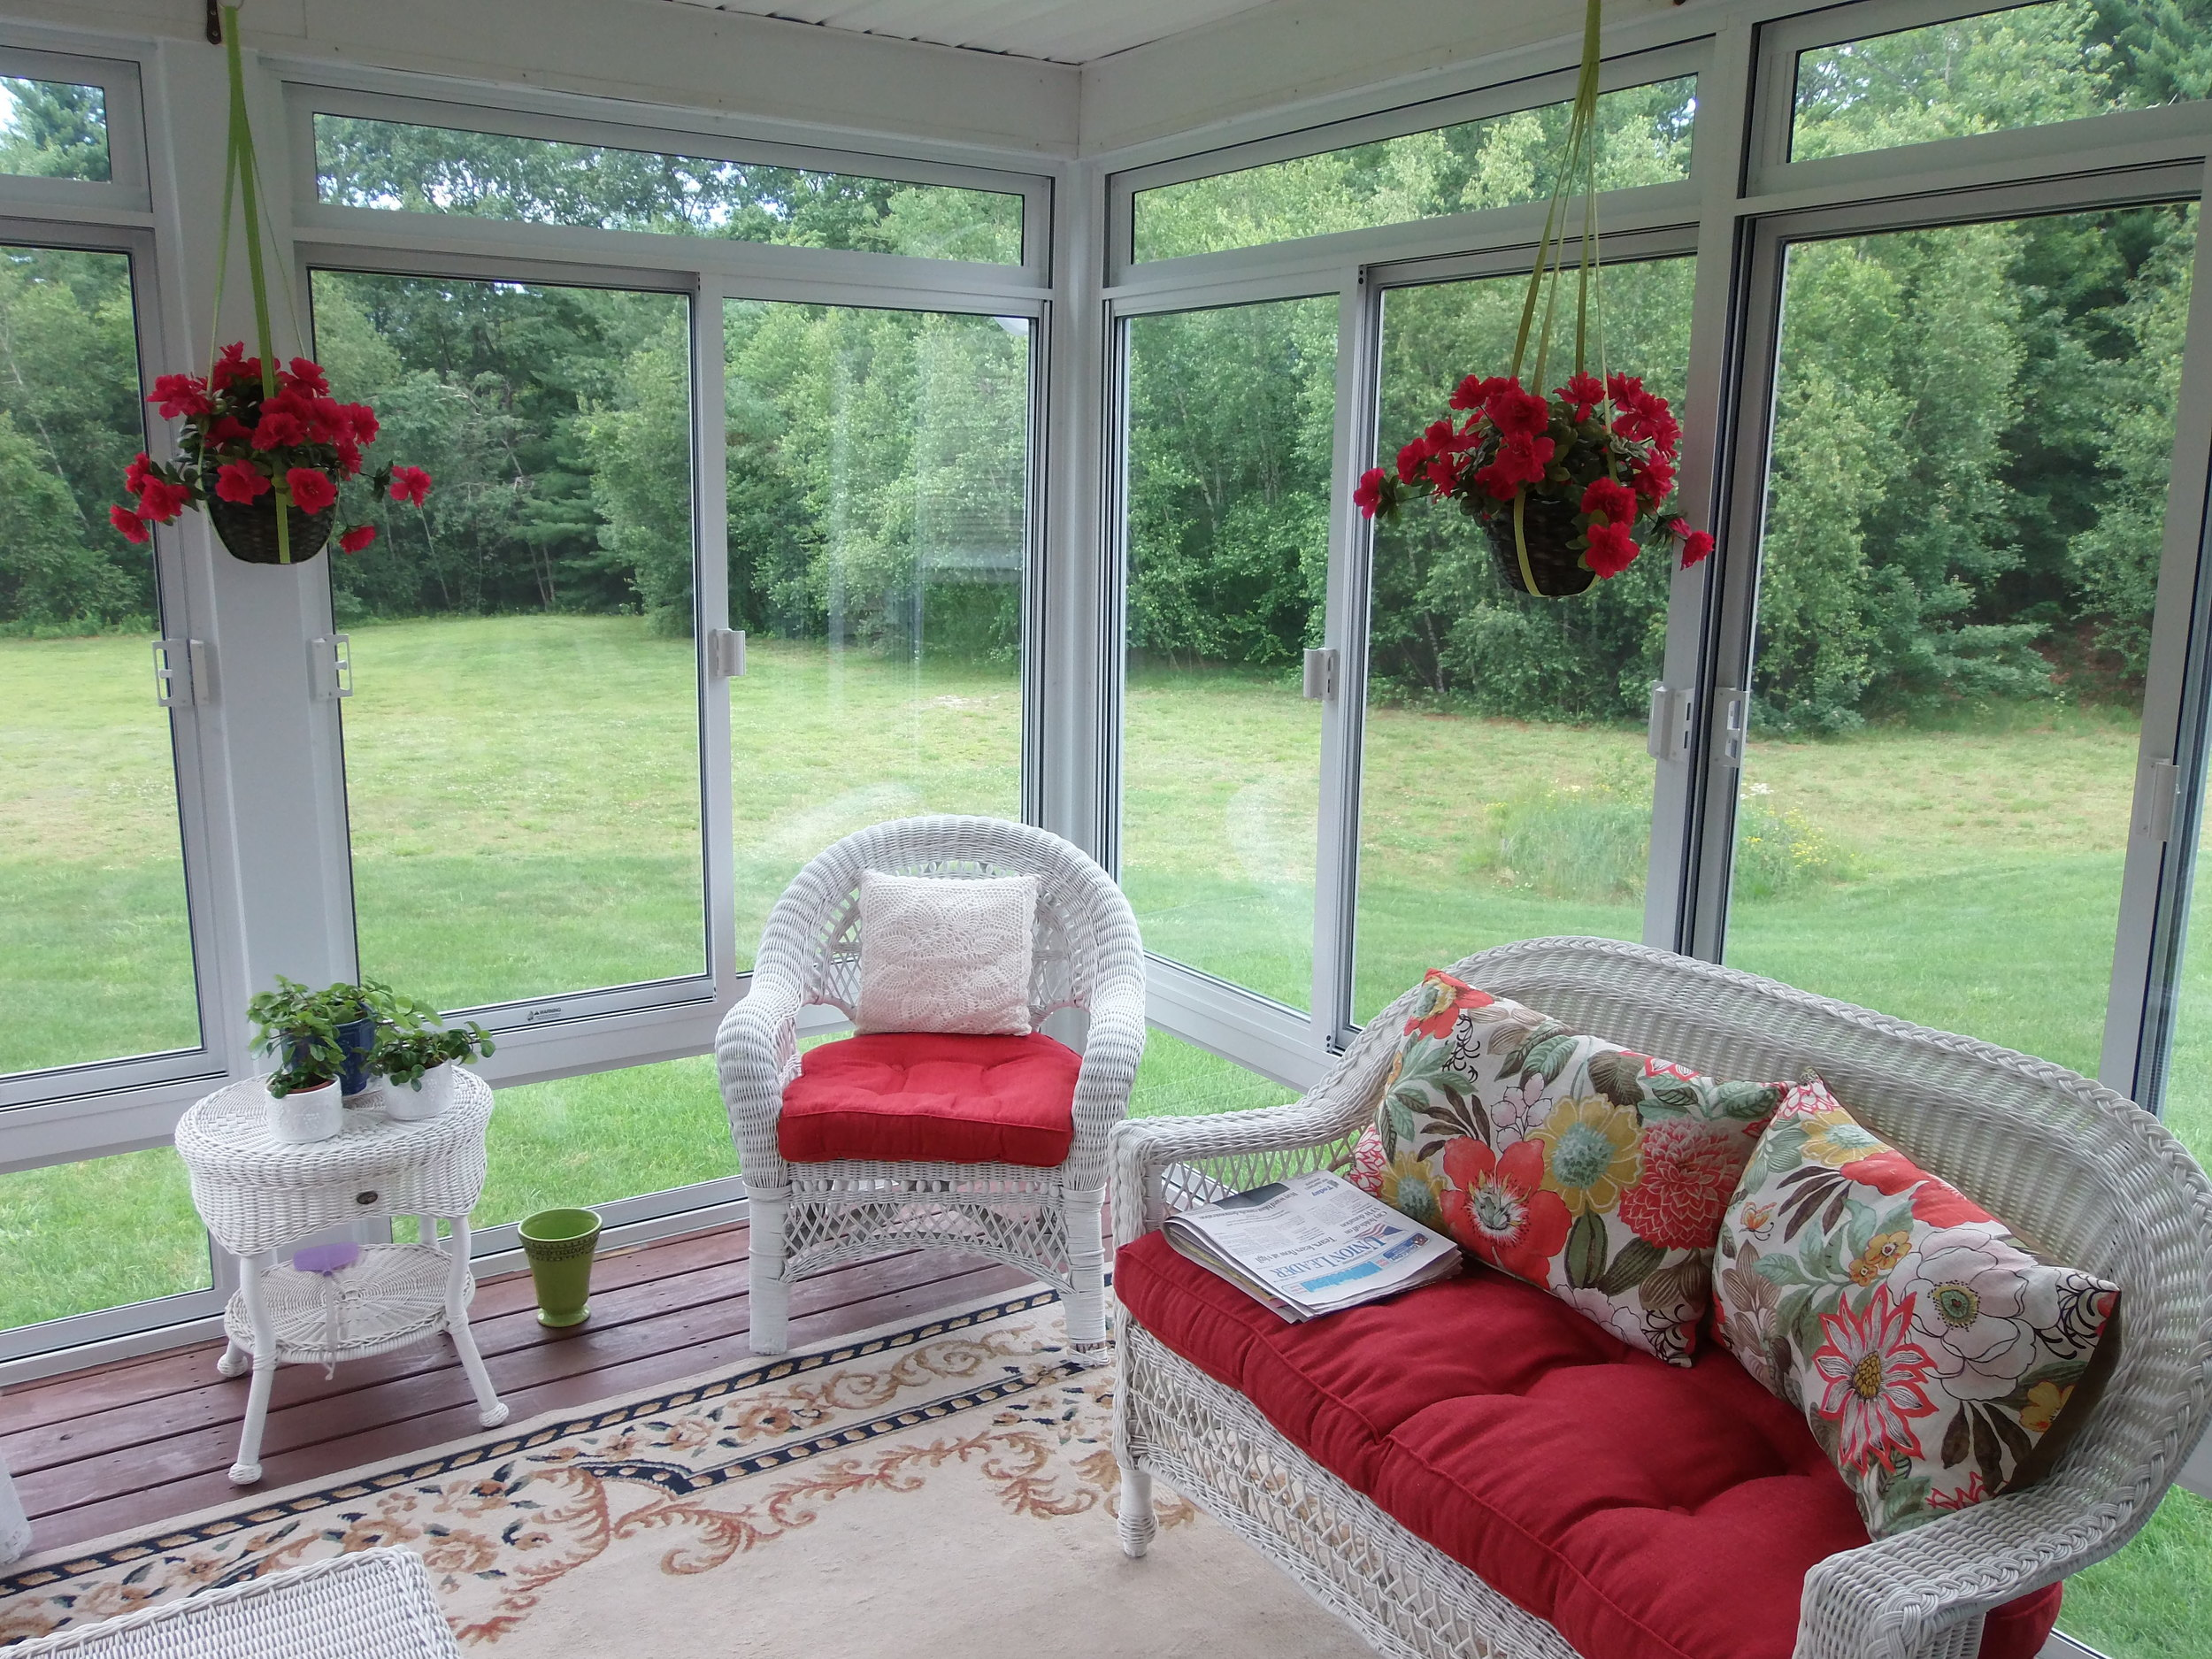 Design Tips For the Inside of Your Sunroom